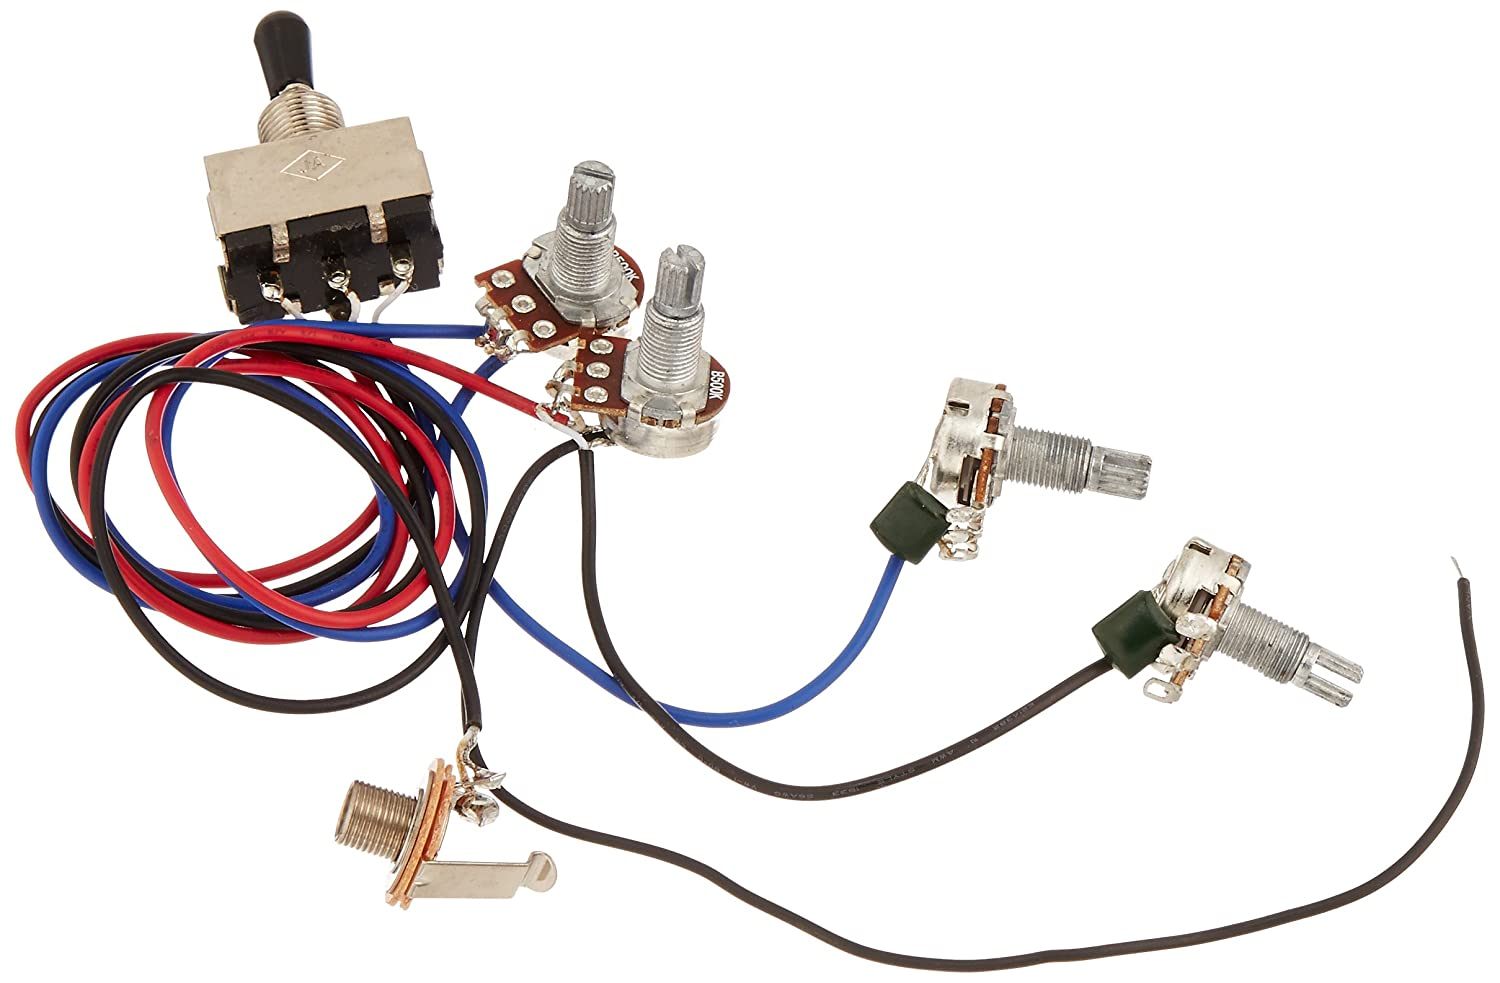 81LsyHV0HJL._SL1500_ amazon com kmise wiring harness prewired 2v2t 3way toggle switch guitar wiring harness at readyjetset.co